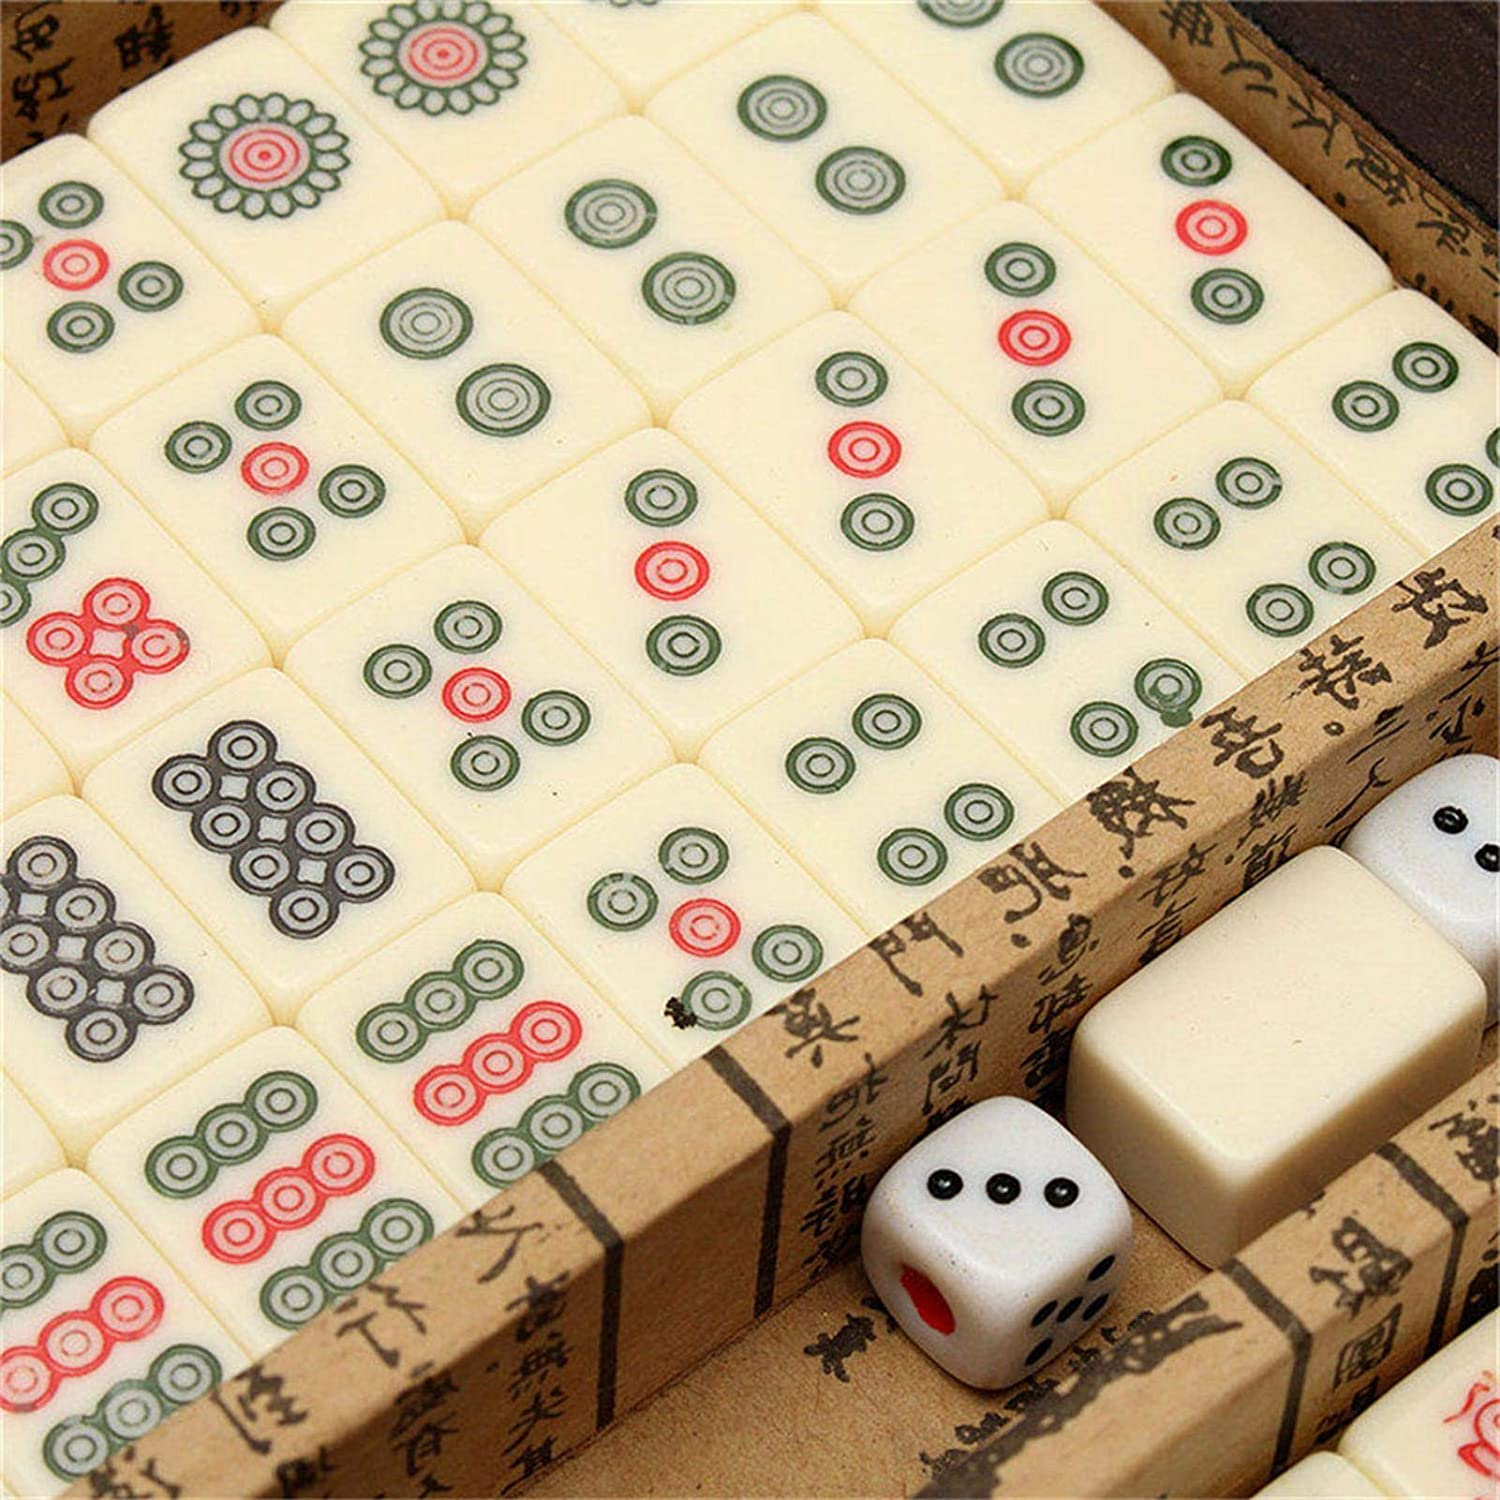 Chinese Traditional Mahjong for Family Leisure Time 144Pcs Travel Mahjong Chinese Version Game Set Portable Mah-jongg with Archaistic Leather Box and Manual